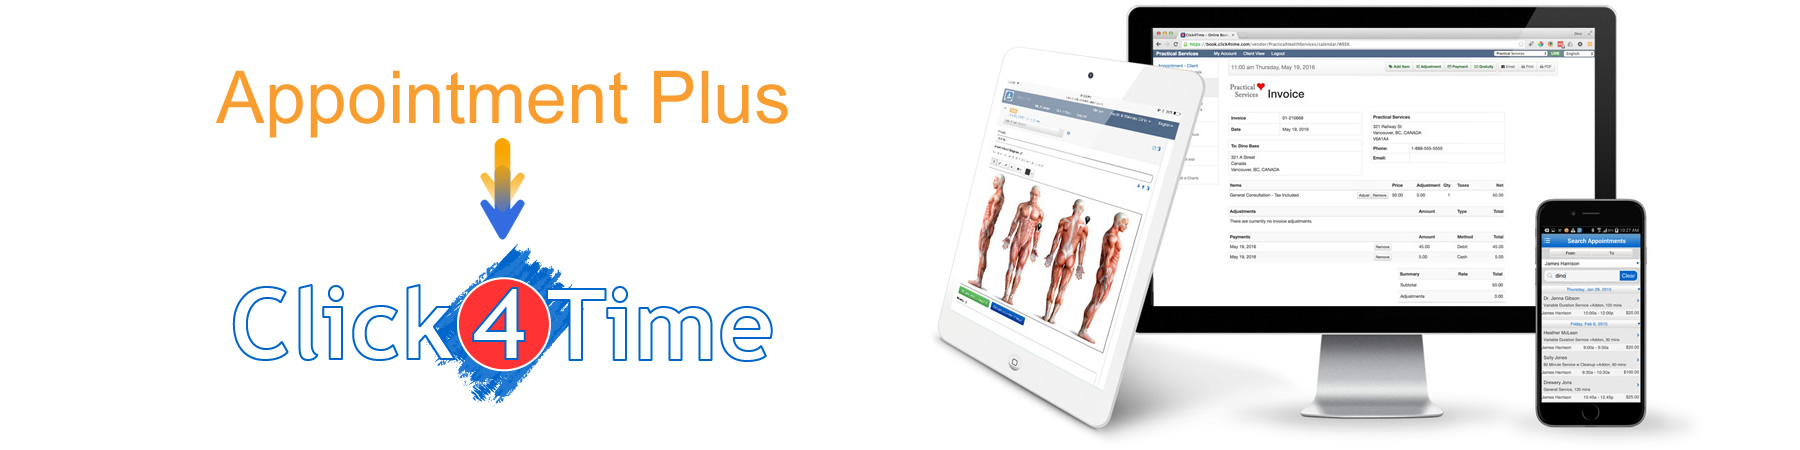 Looking for alternatives to Appointment Plus, Click4Time is the easiest solution to convert too